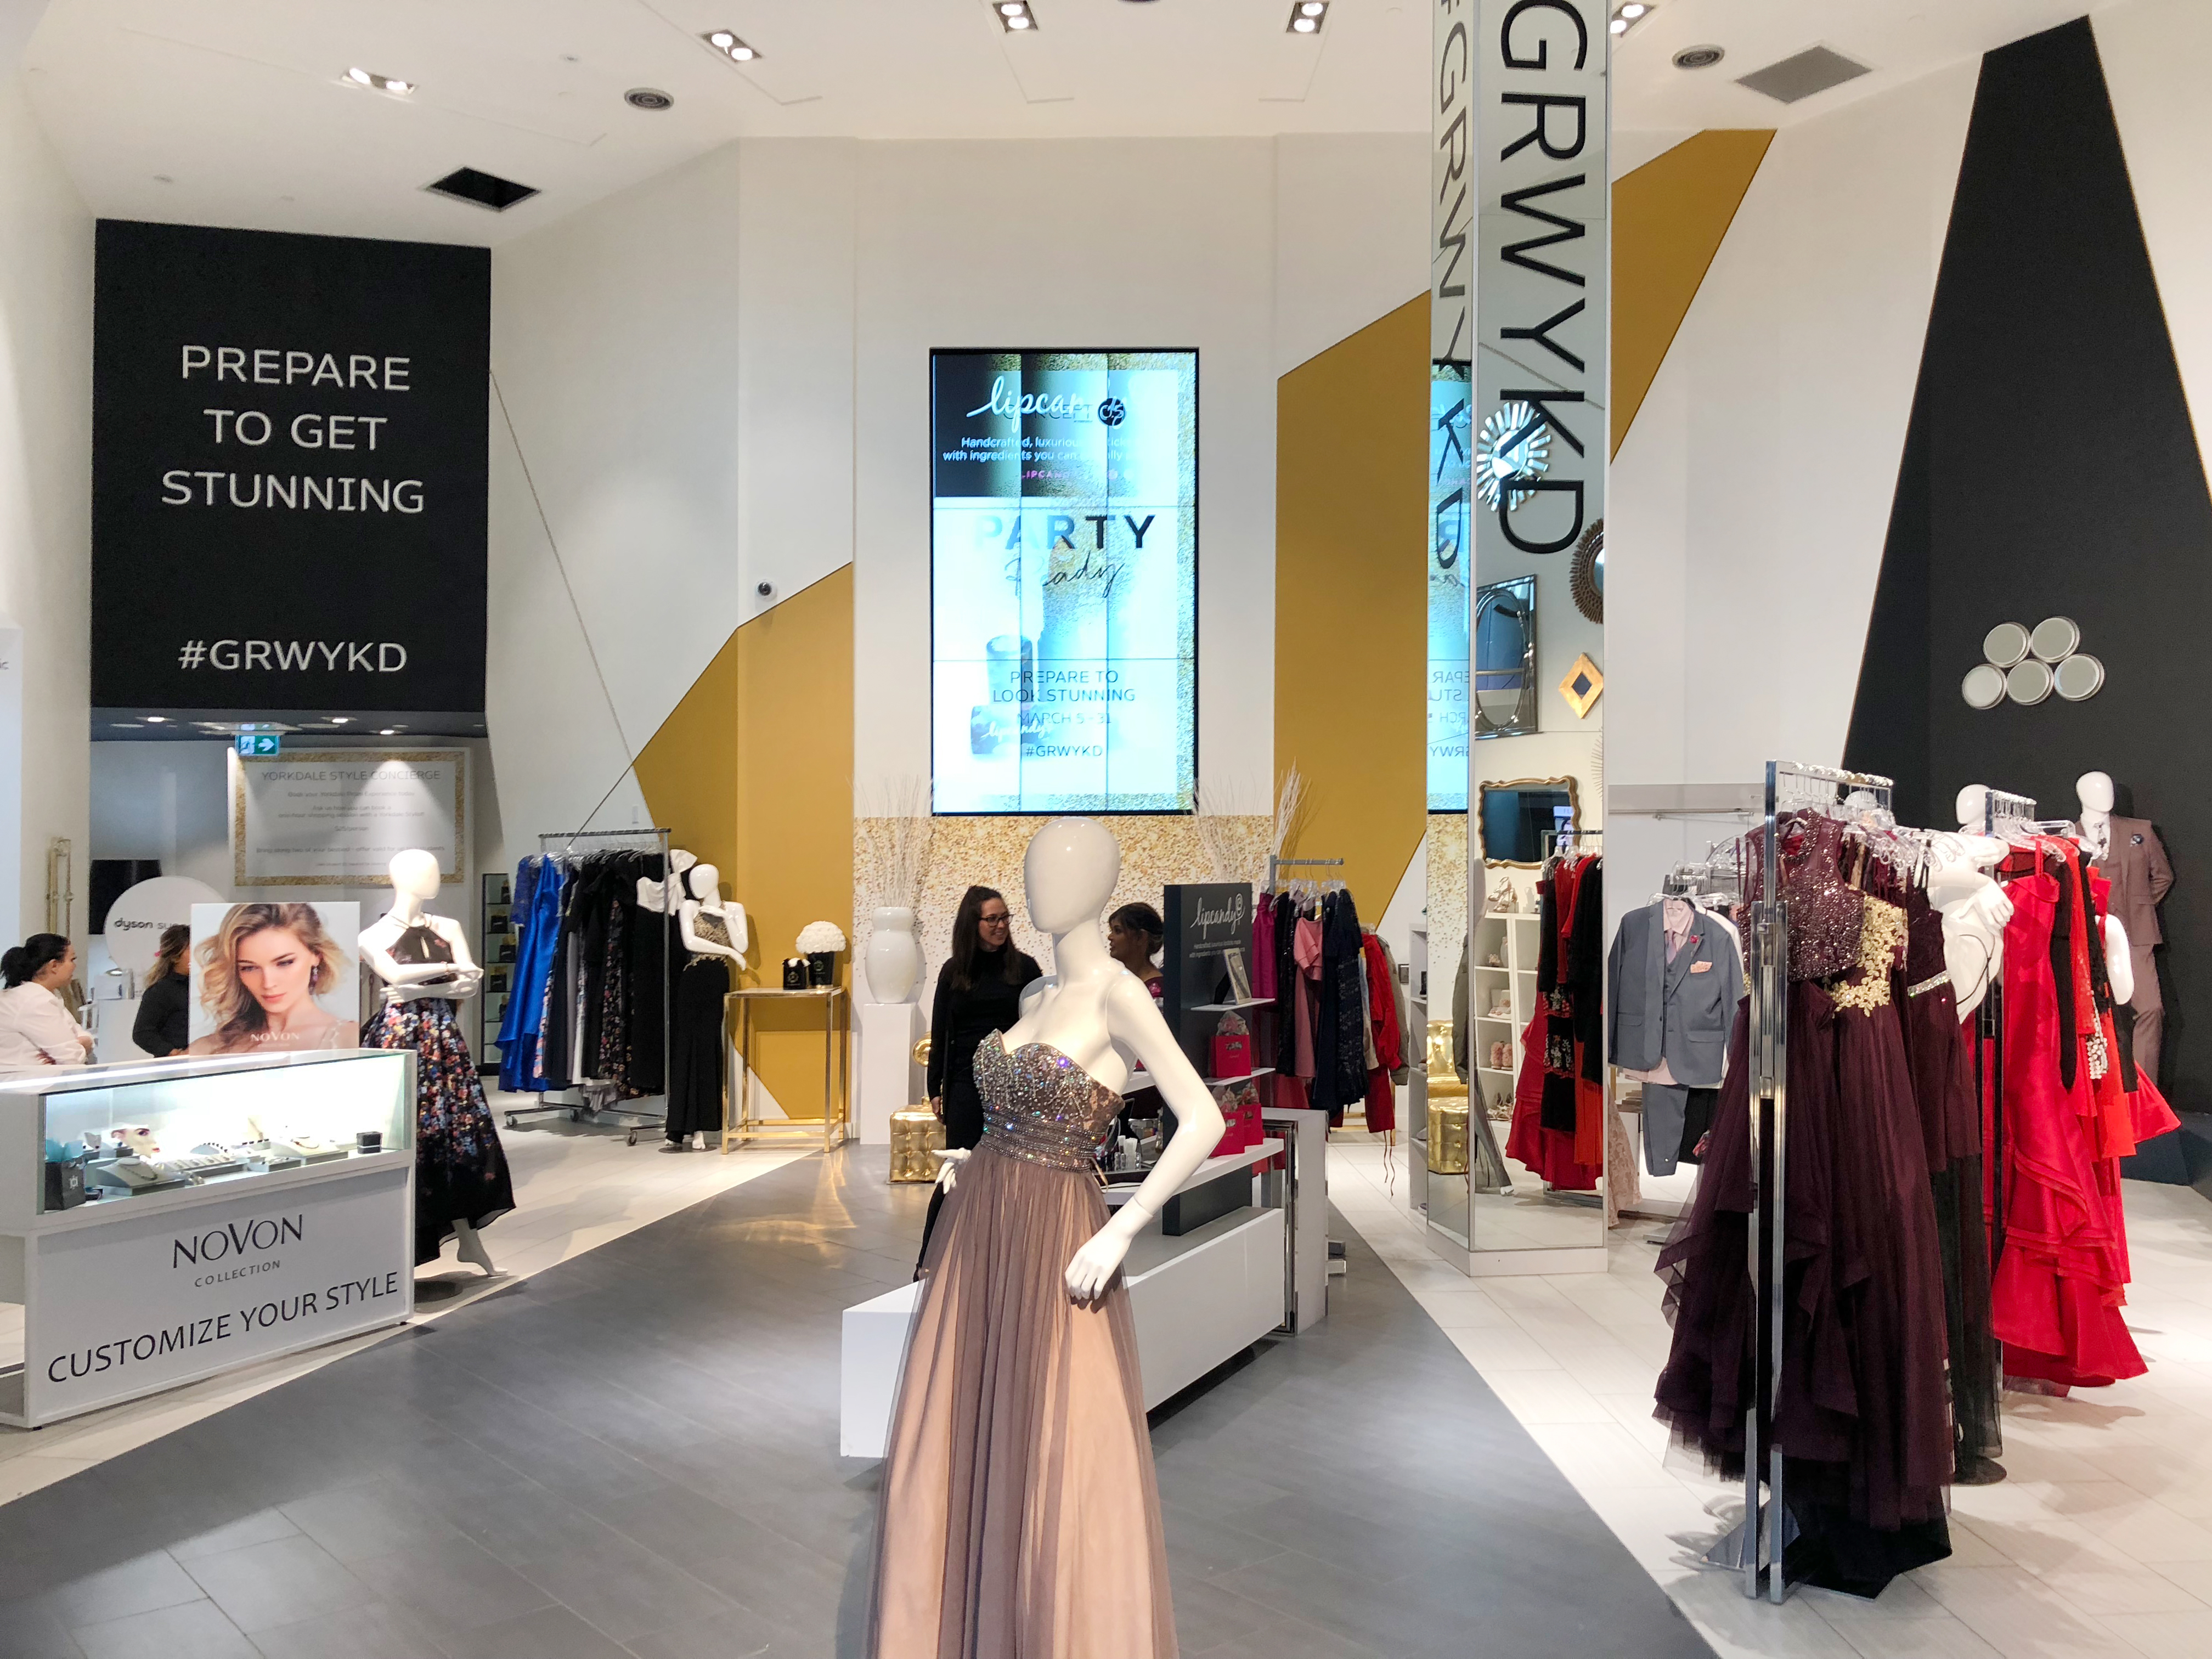 Concept Yorkdale interior with mannequins and racks of clothing